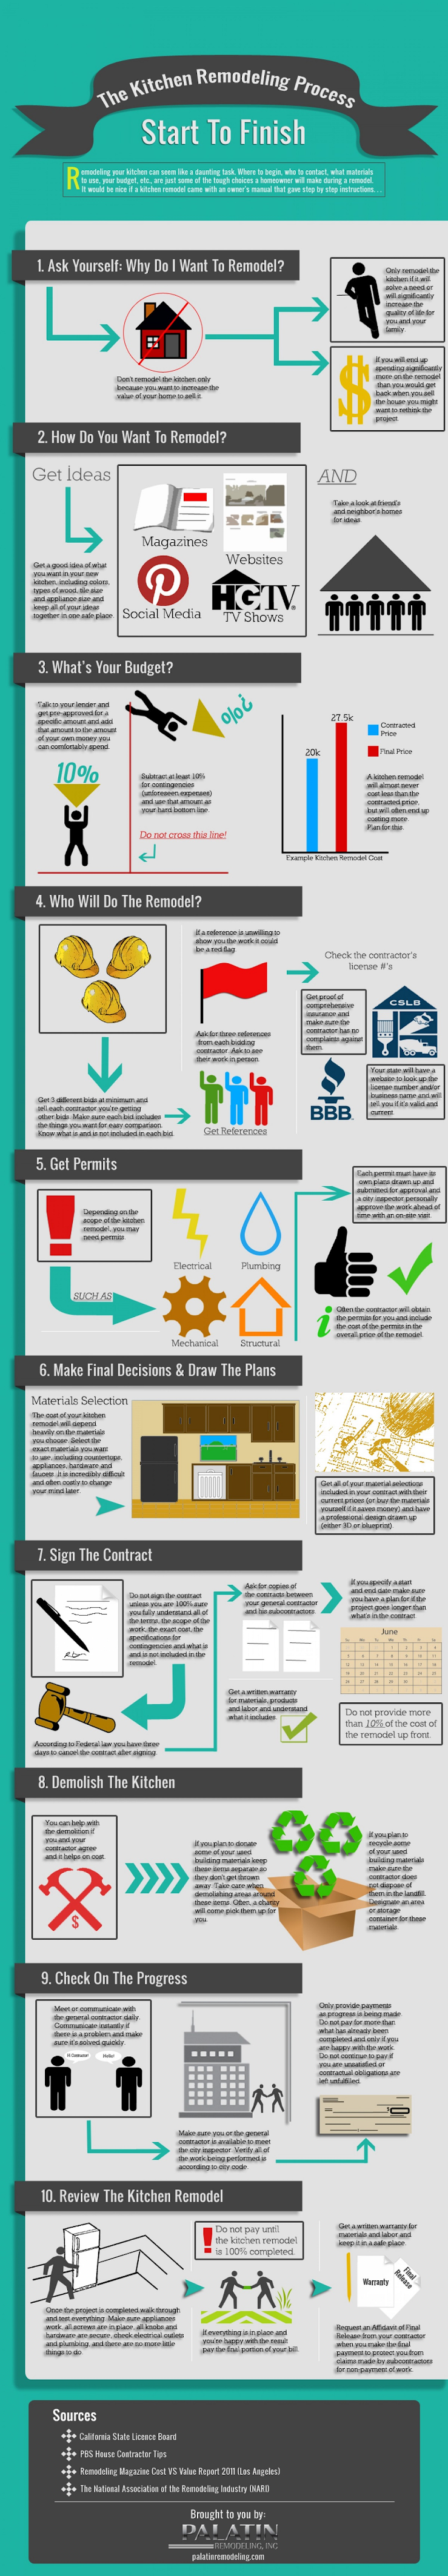 The Kitchen Remodeling Process Start to Finish #infographic